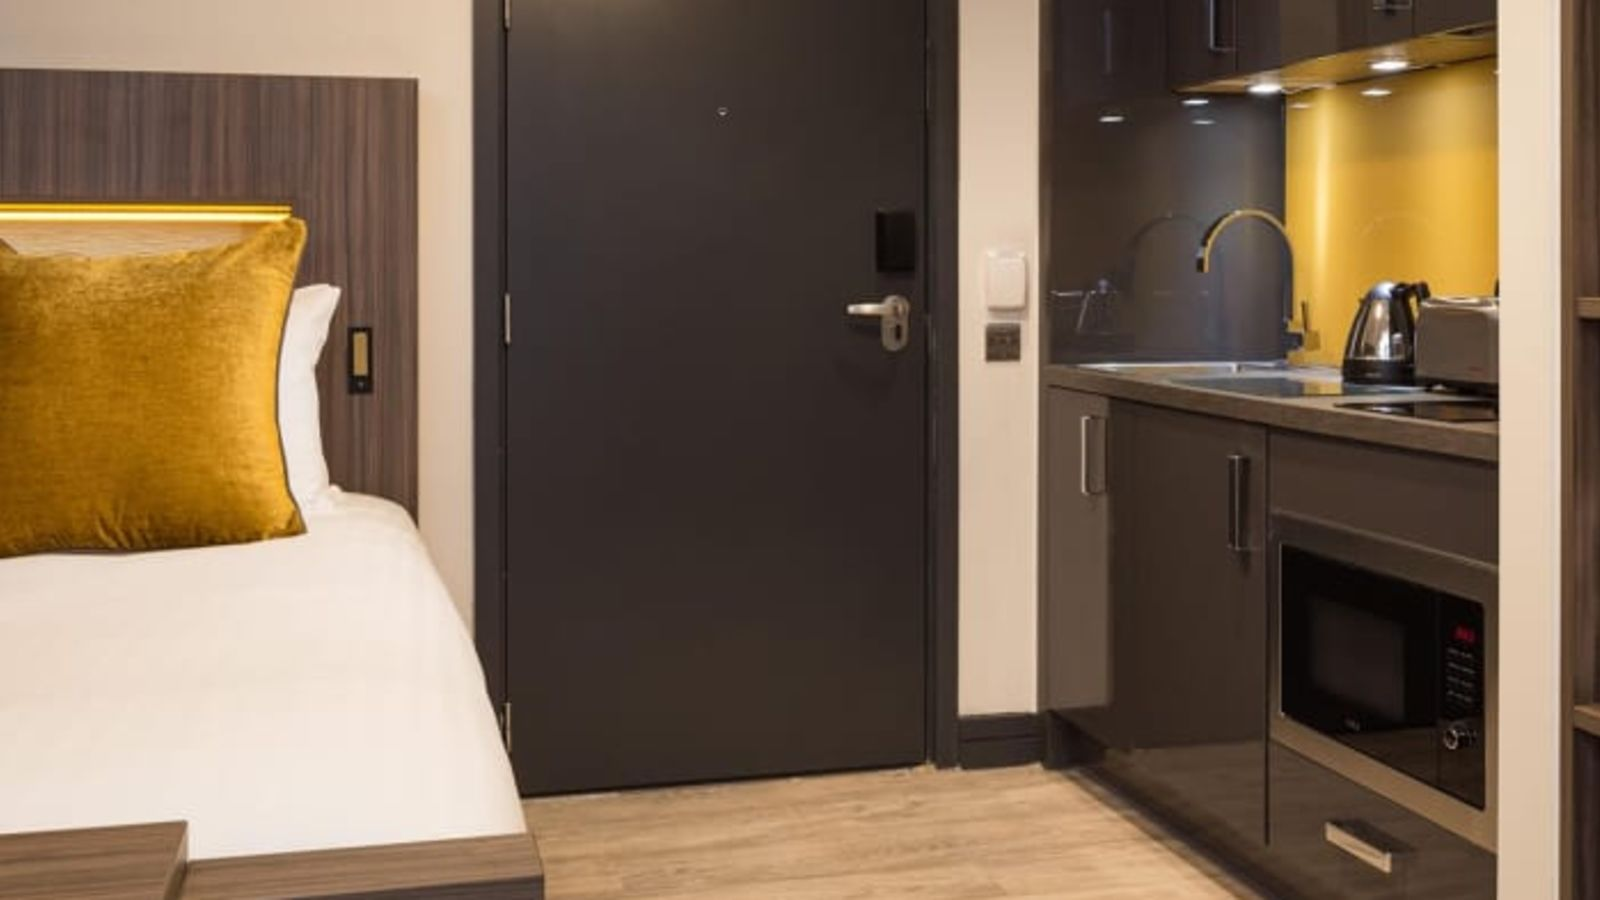 Neo Studio Student Apartment in Manchester with Fully Equipped Kitchen. IconInc @ Roomzzz